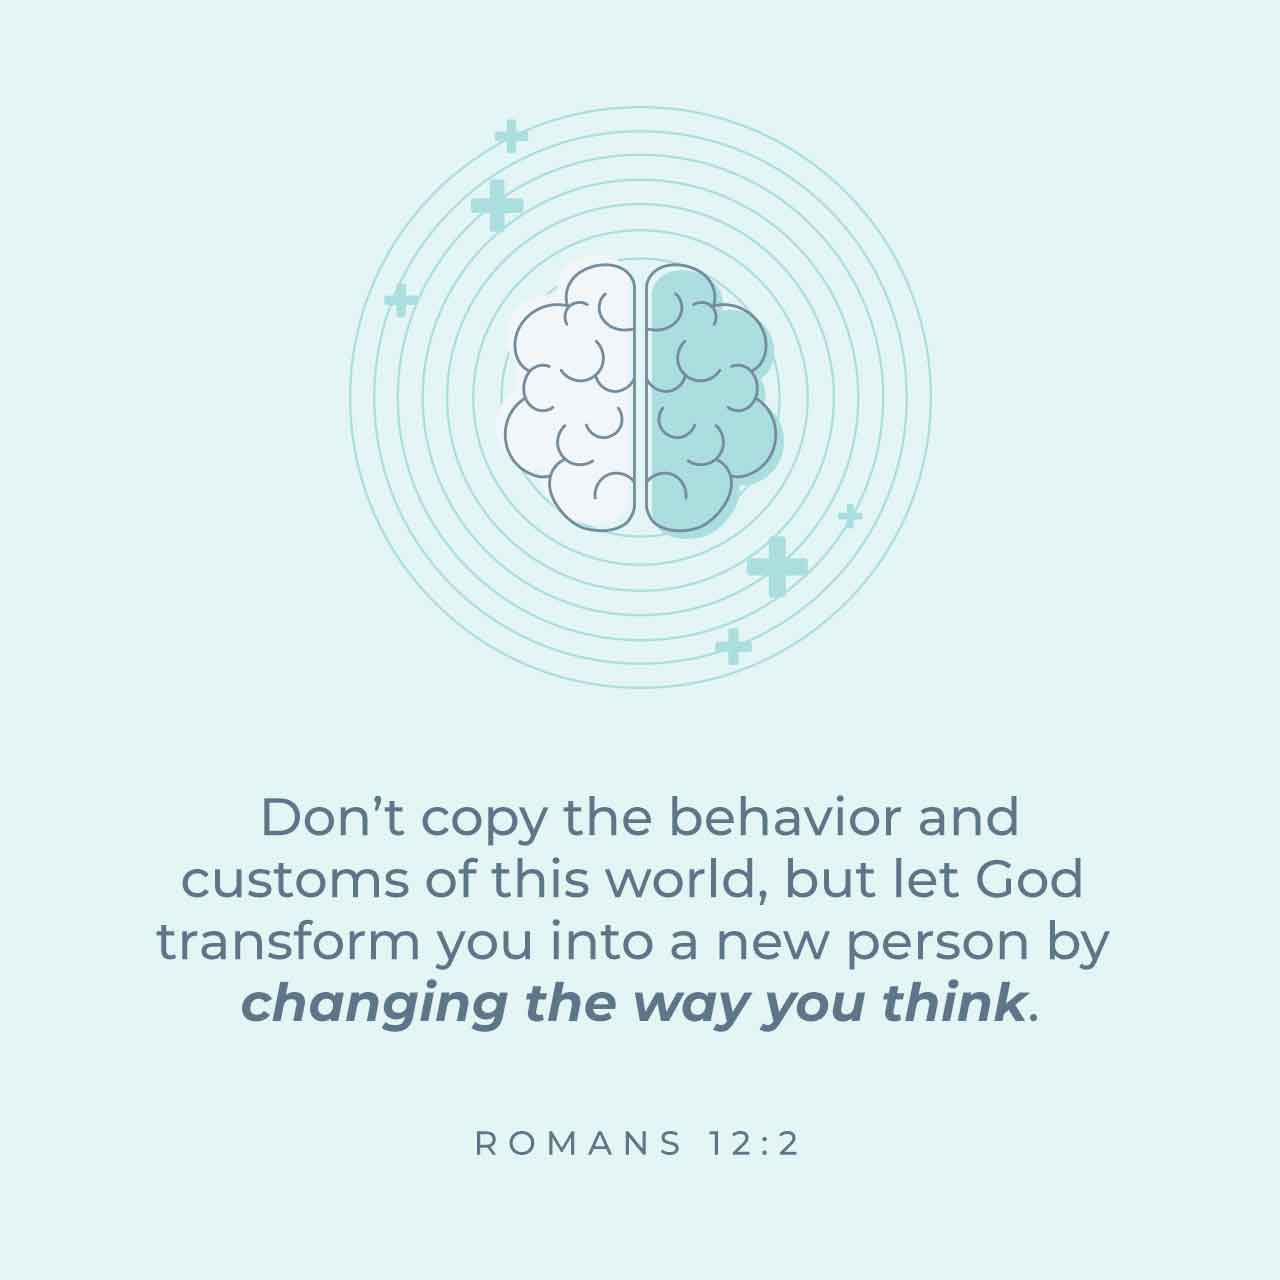 Don't copy the behavior and custos of this world, but let God transform you into a new person by changing the way you think. Romans 12:2 - Verse Image